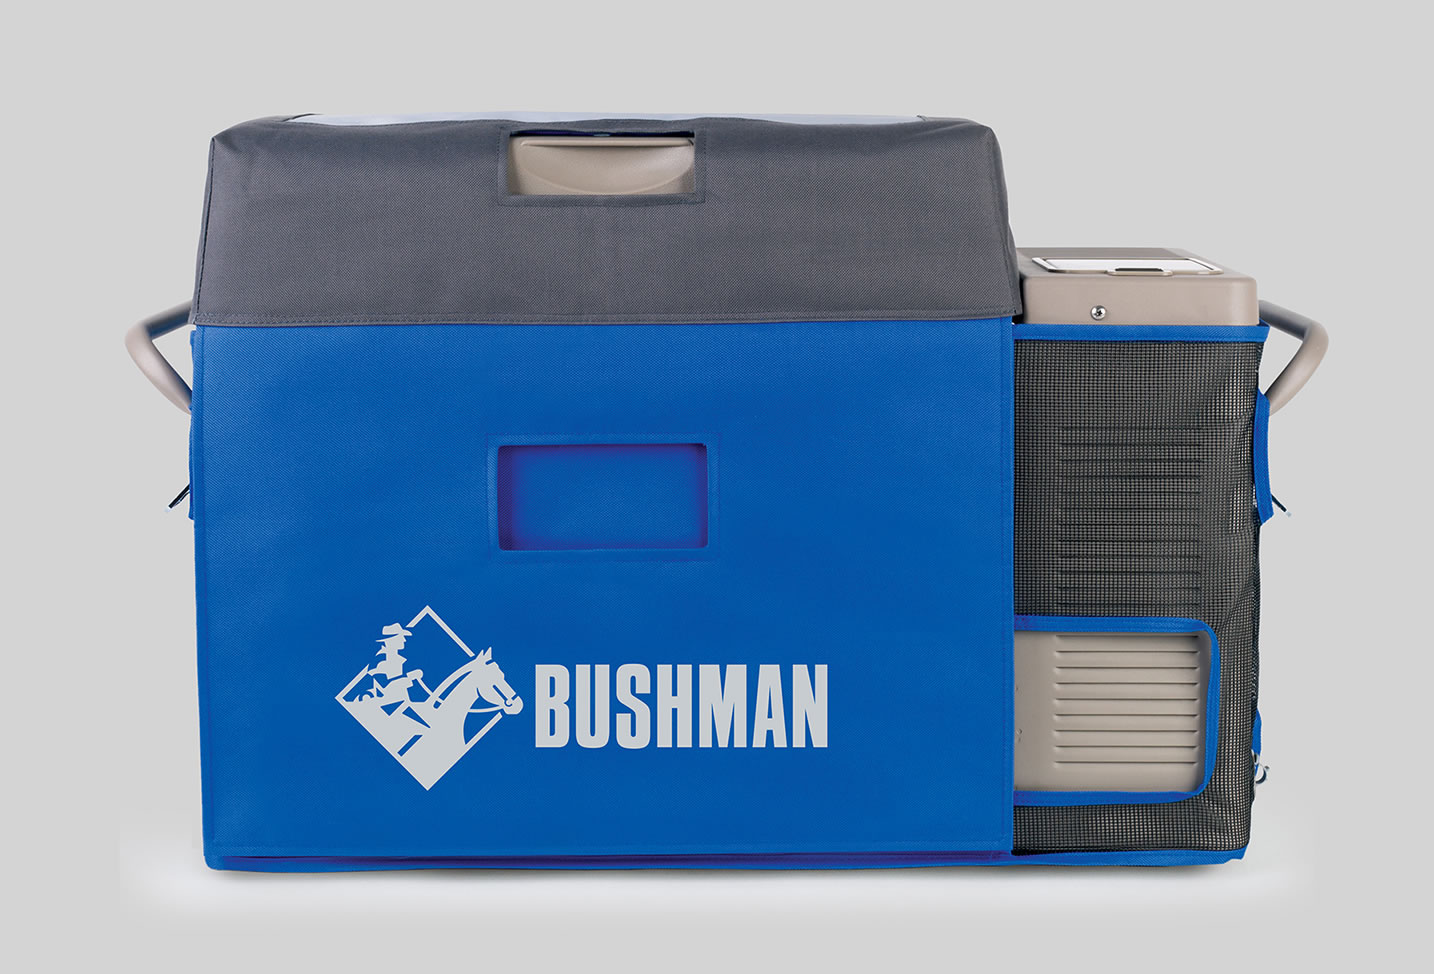 air bags Toolern engineering bushman fridge